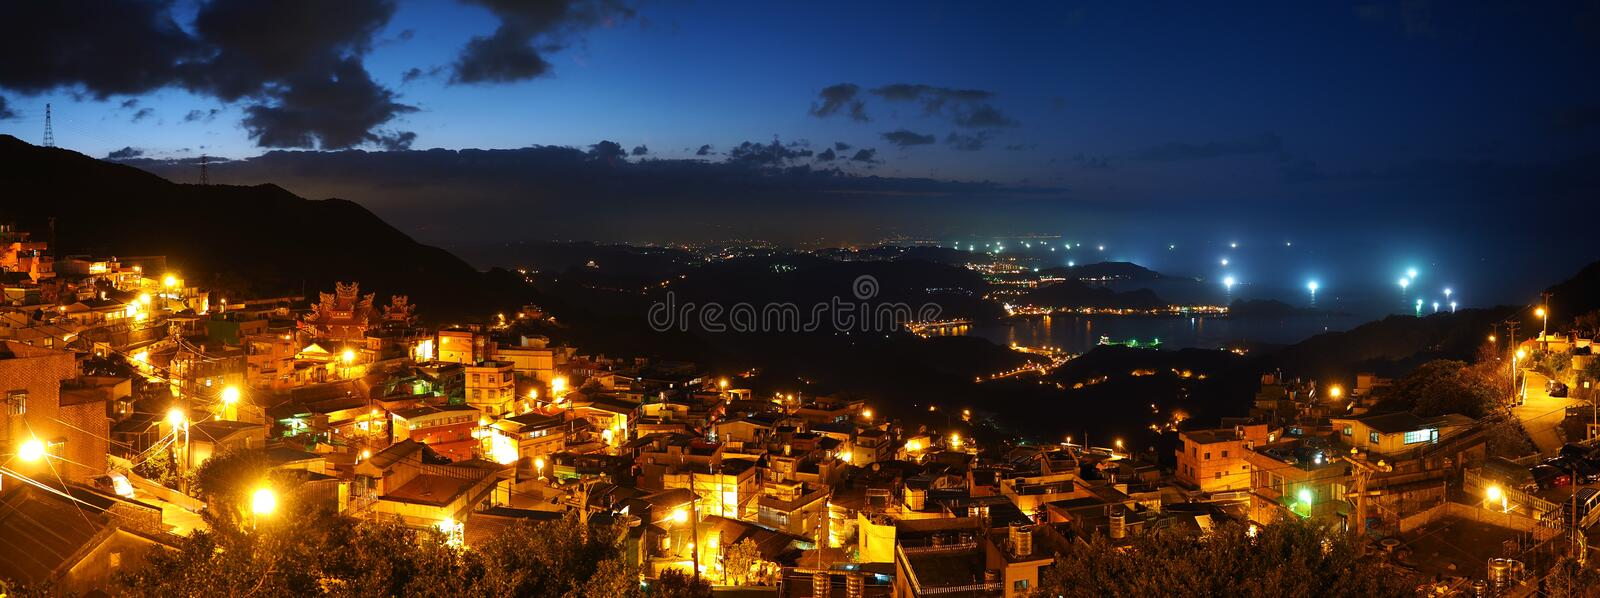 Extra High Resolution Panorama Night Image of Coas. Tline in Taipei royalty free stock photography